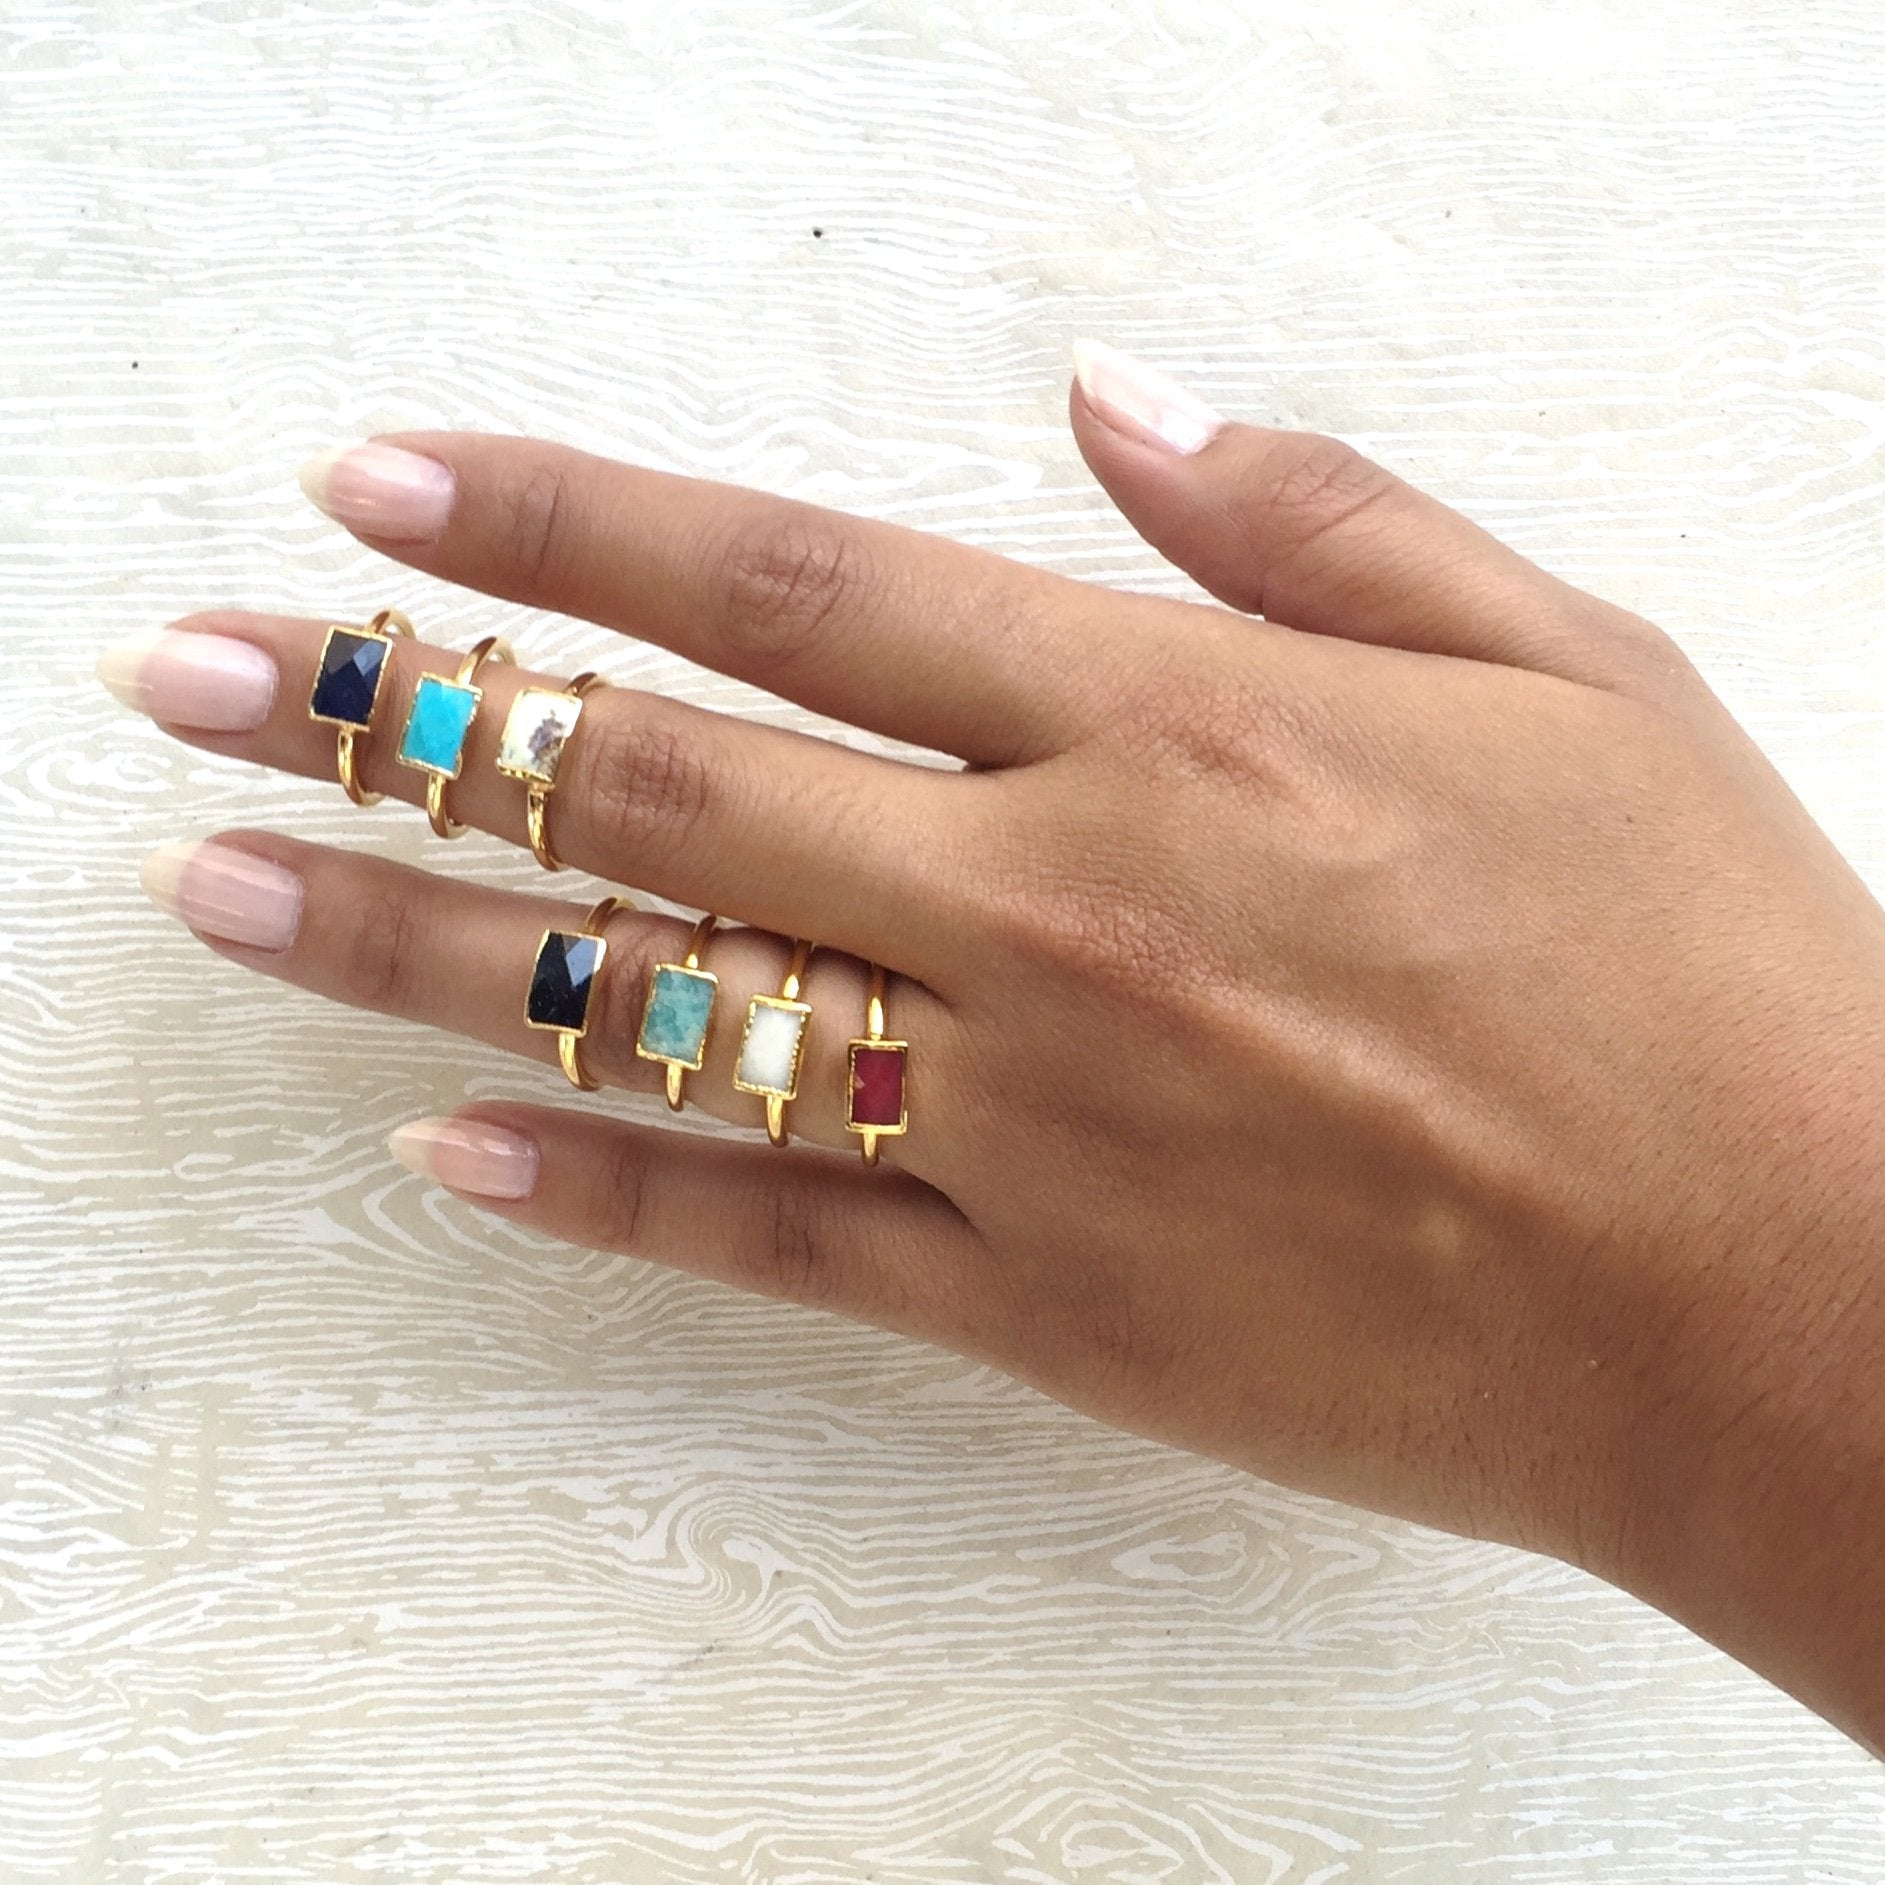 semi precious stacking rings on hand